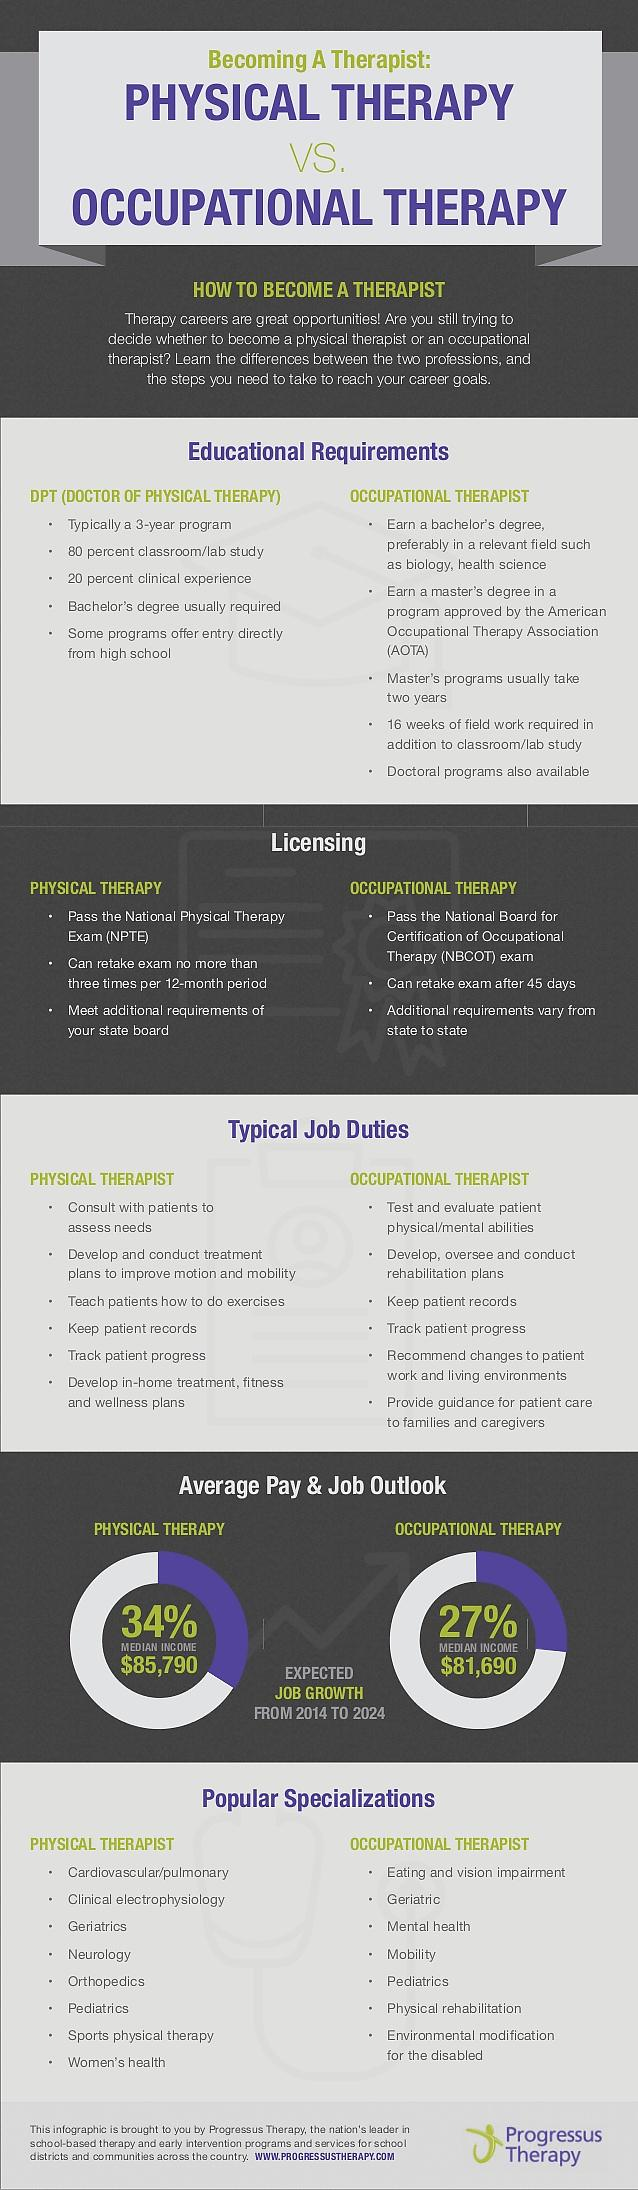 Becoming A Therapist The Differences Between A Career In Physical Therapy Vs Occupational Therapy Career 30seconds Mom